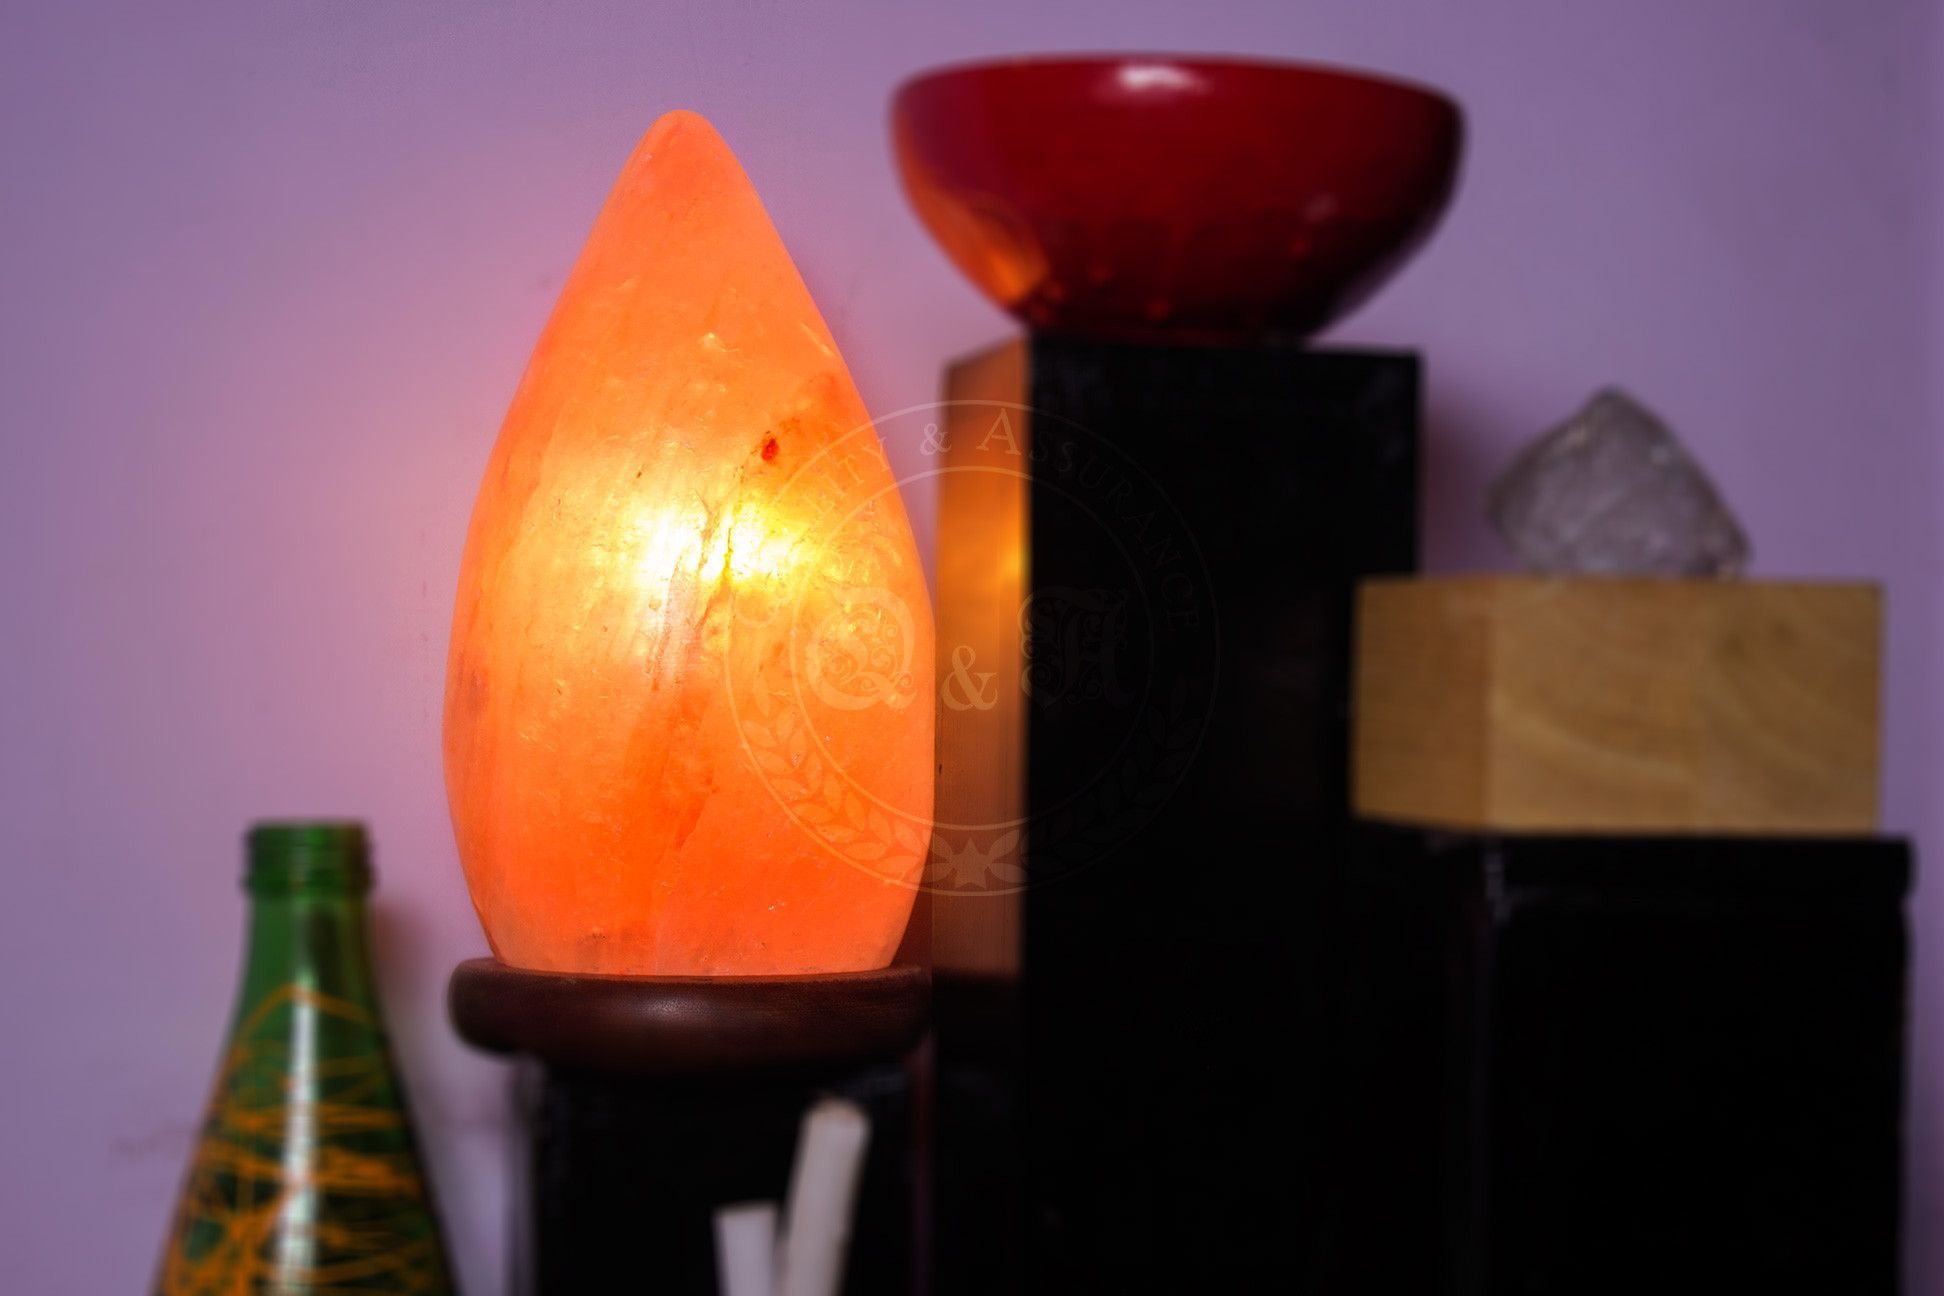 Himalayan Salt Tear Drop Lamp Himalayan Rock Salt Lamp Himalayan Salt Lamp Himalayan Salt